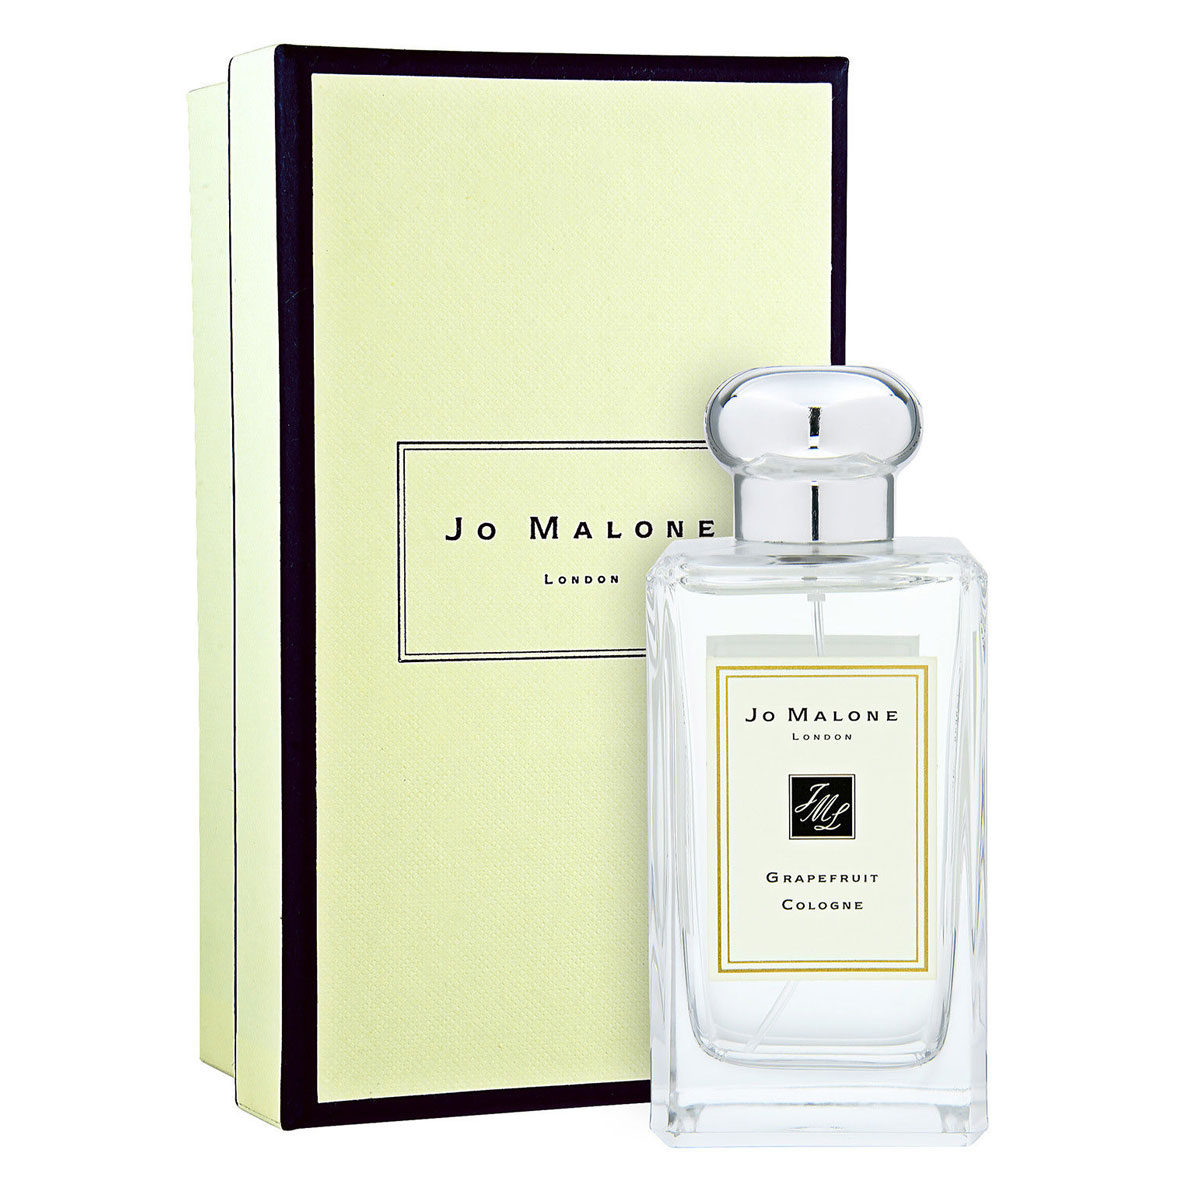 Jo Malone Grapefruit with Box